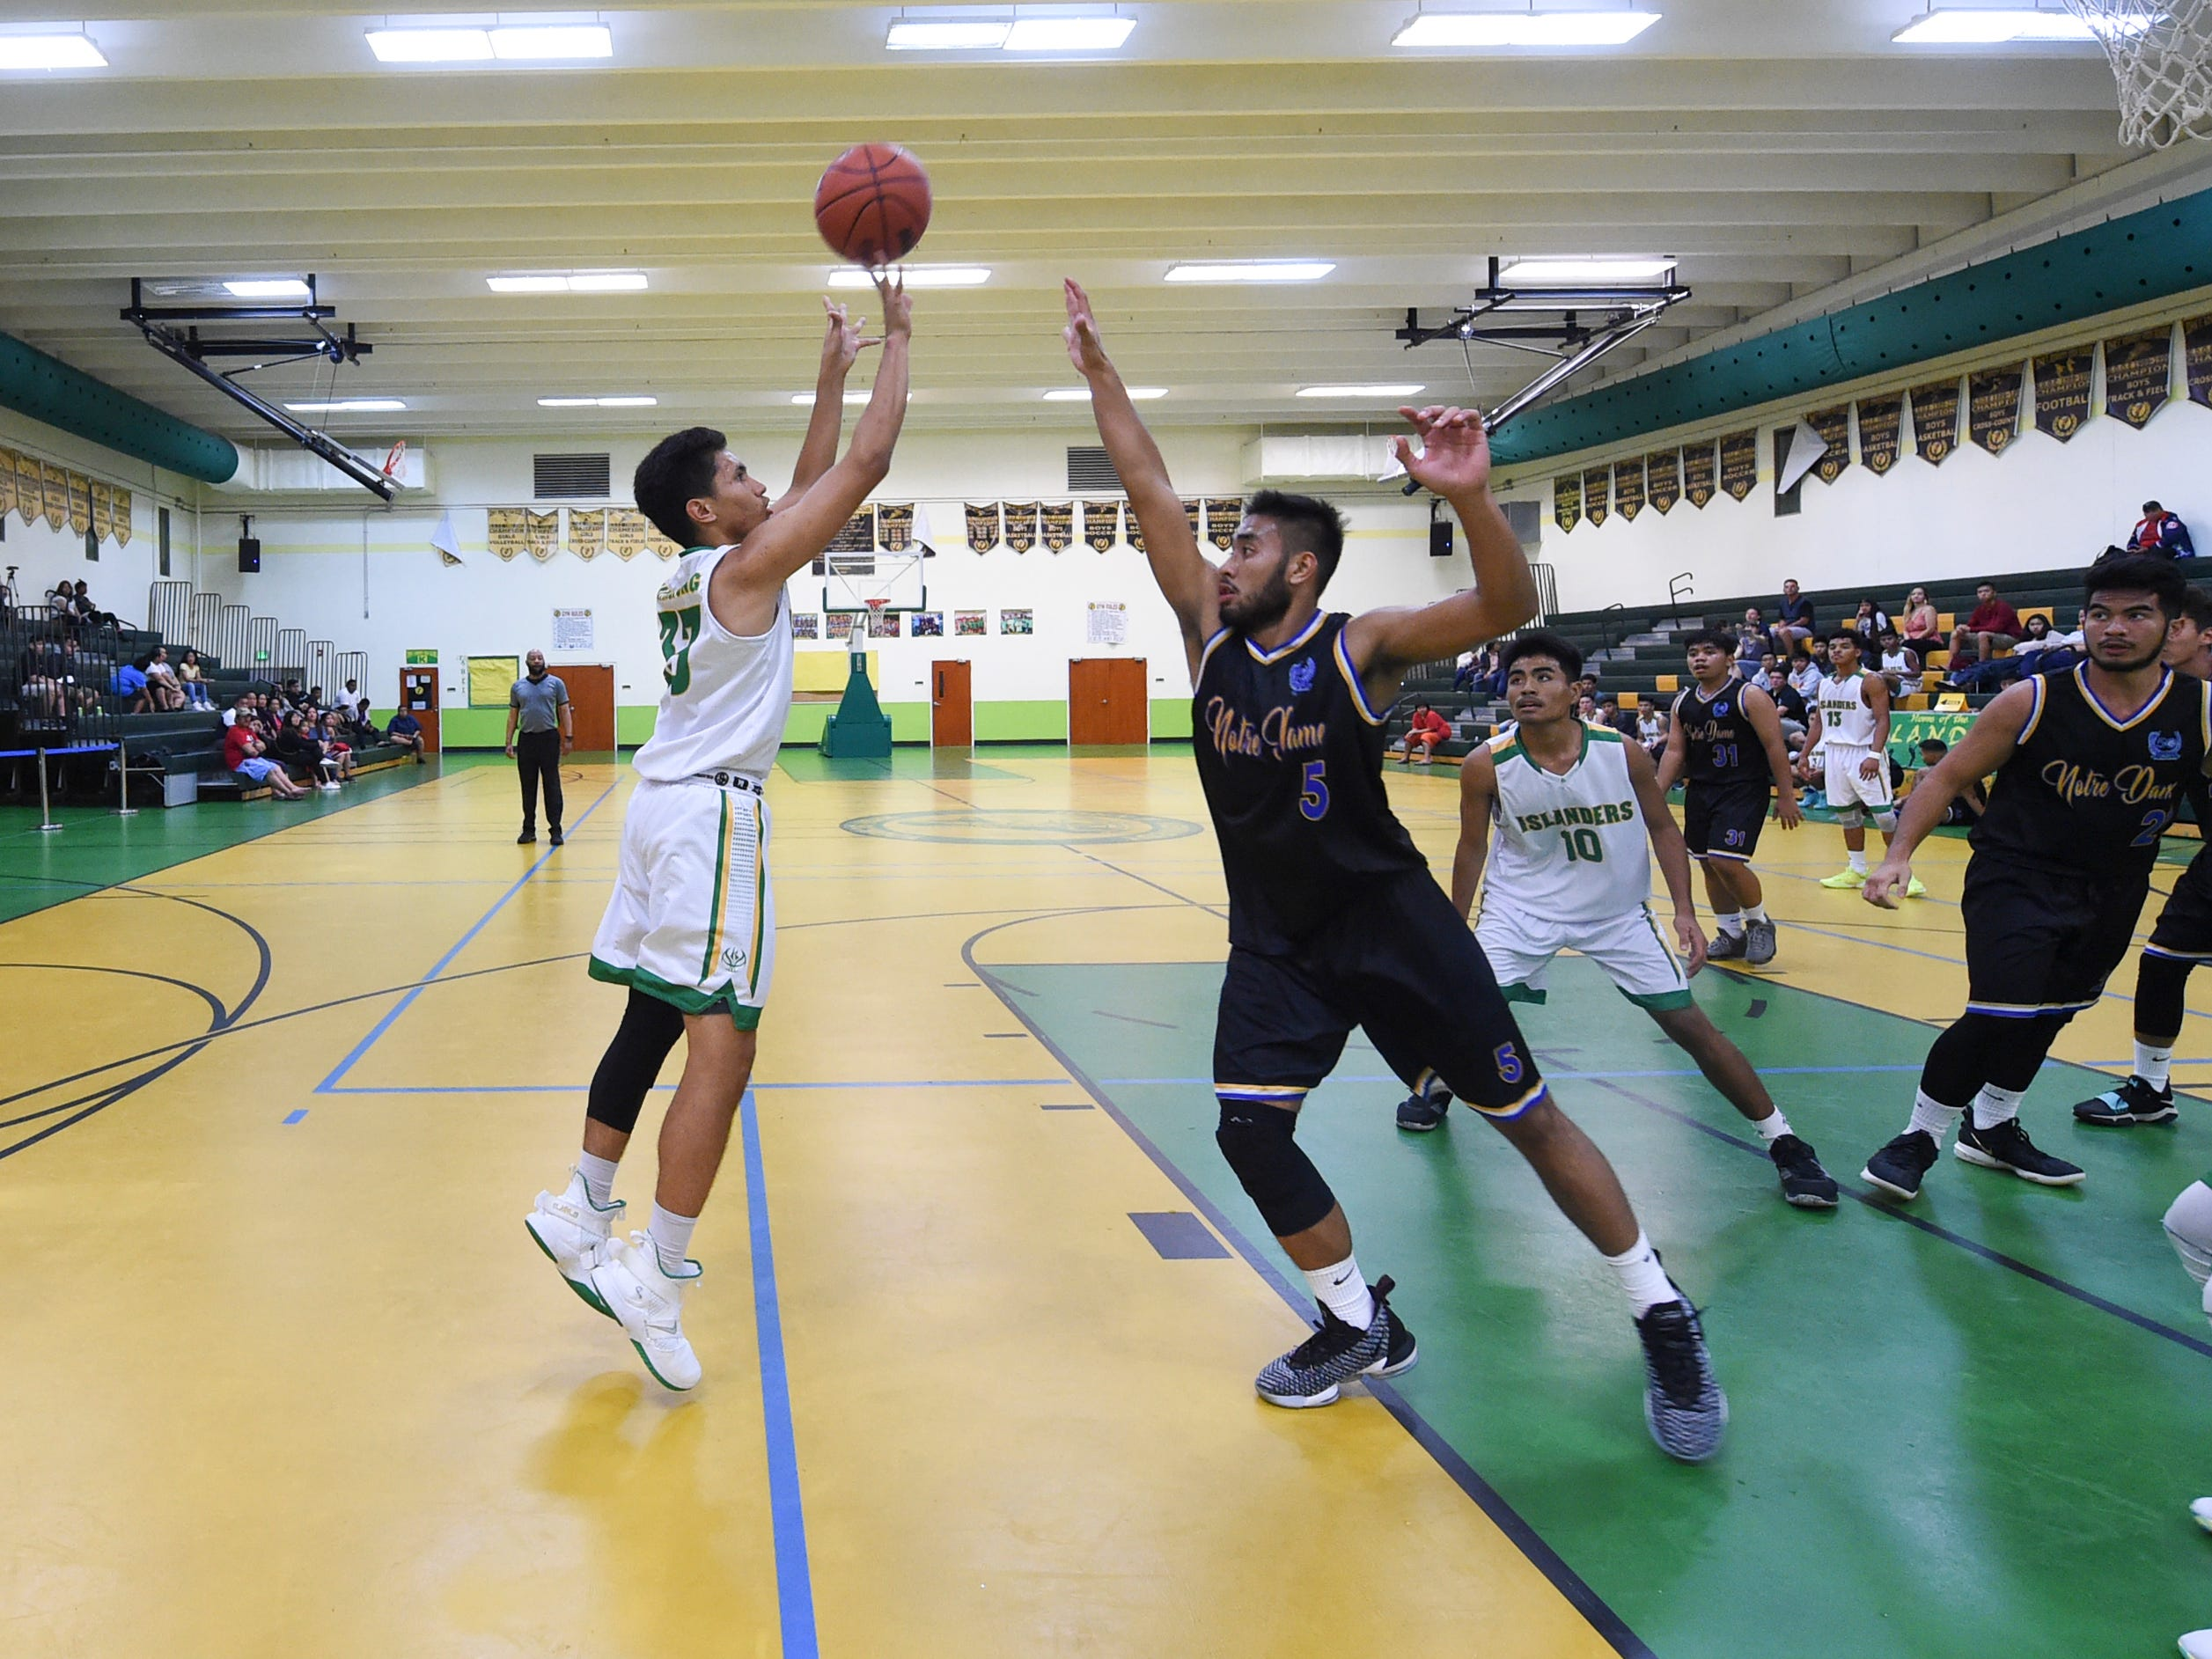 John F. Kennedy Islander Jeremiah Taitingfong shoots a jumpshot during an Independent Interscholastic Athletic Association of Guam Boys' Basketball game at the JFK High School Gym, Feb. 2, 2019.